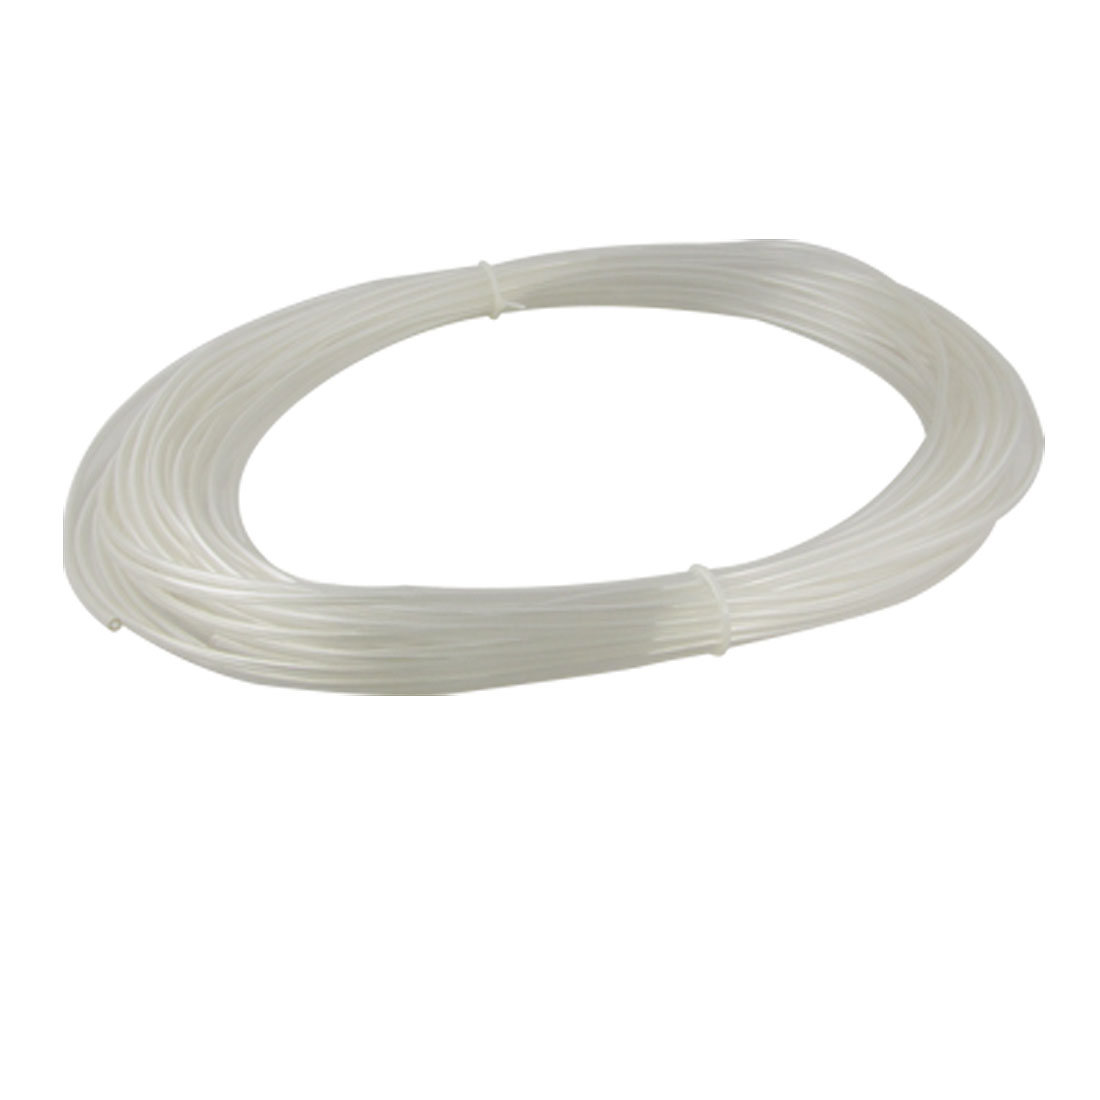 25M 82Ft 4mm x 2.5mm Pneumatic Air PU Hose Pipe Tube Clear